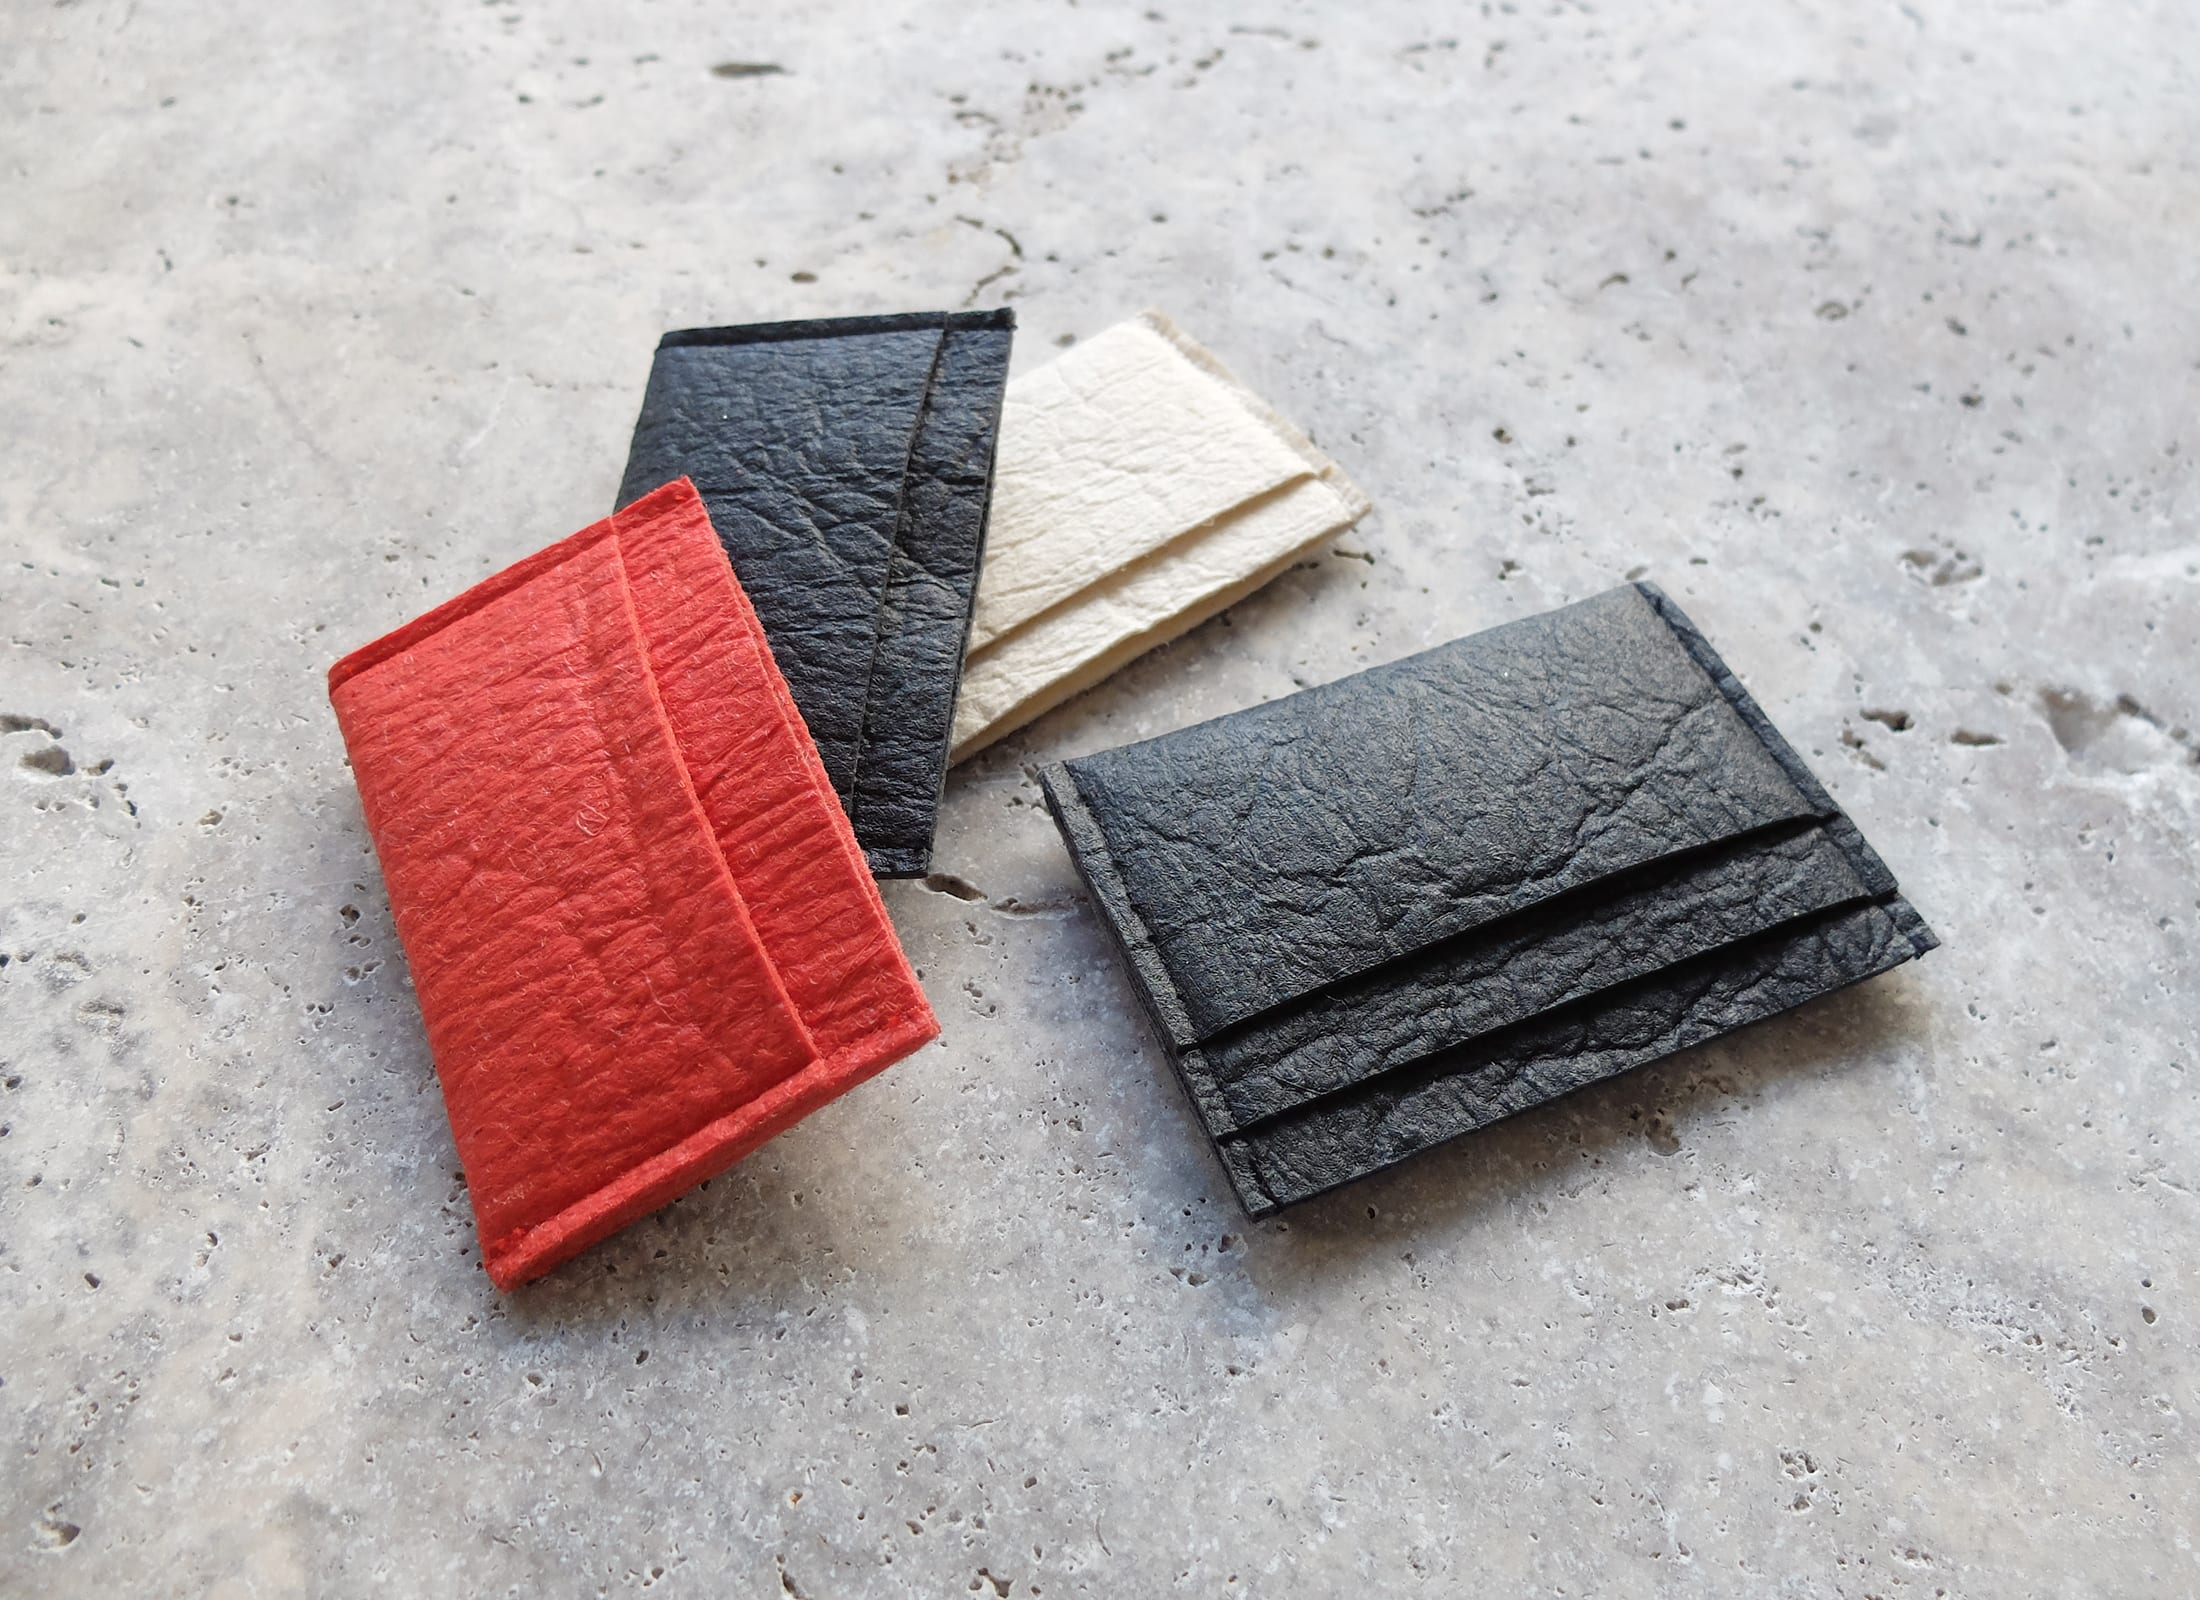 Pinatex: an ethical alternative to leather